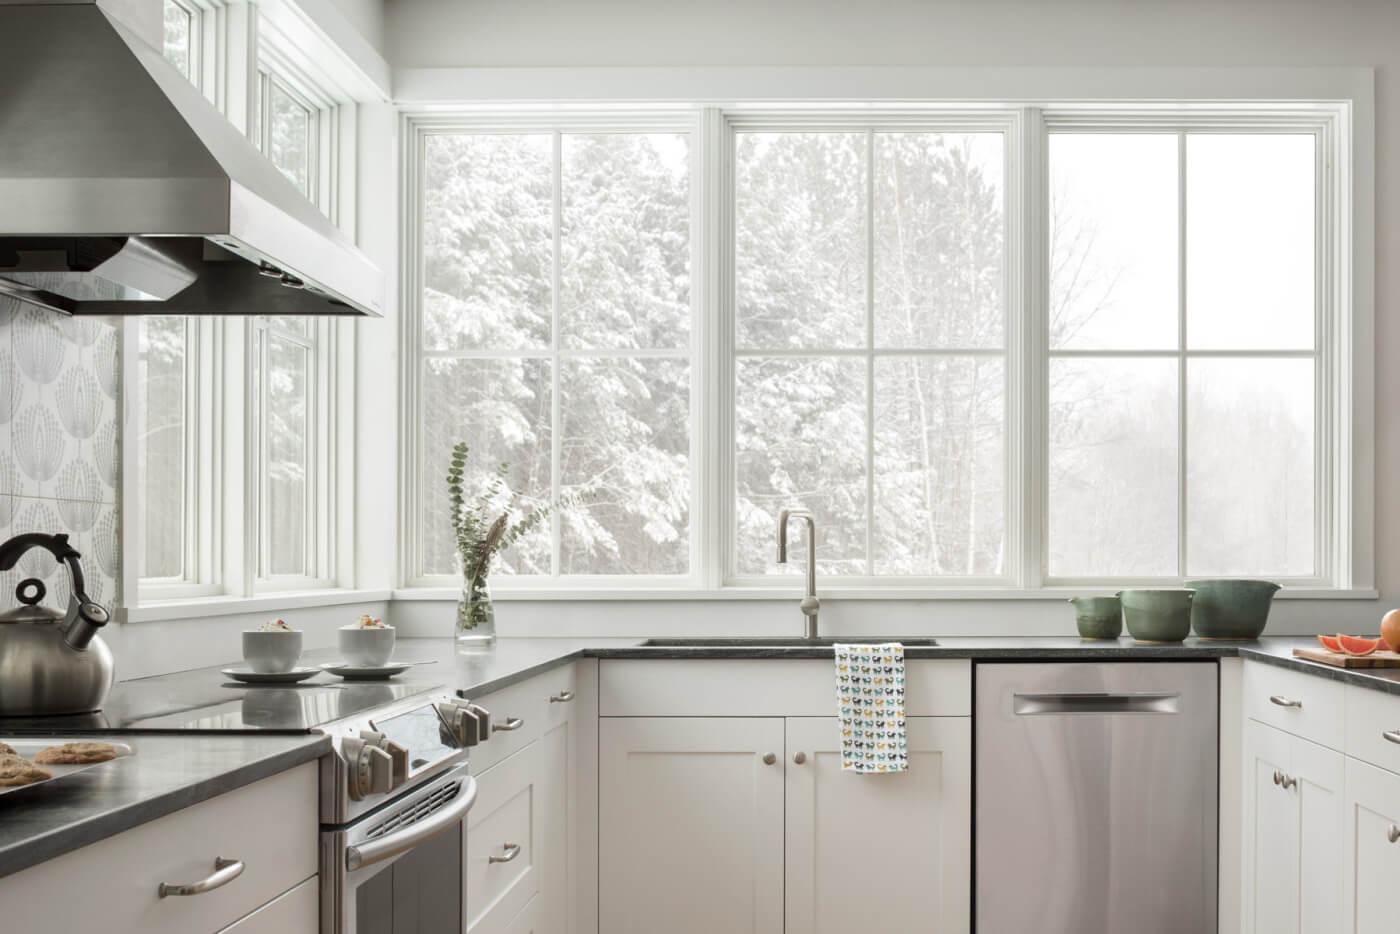 Modern style kitchen with multiple Marvin Windows